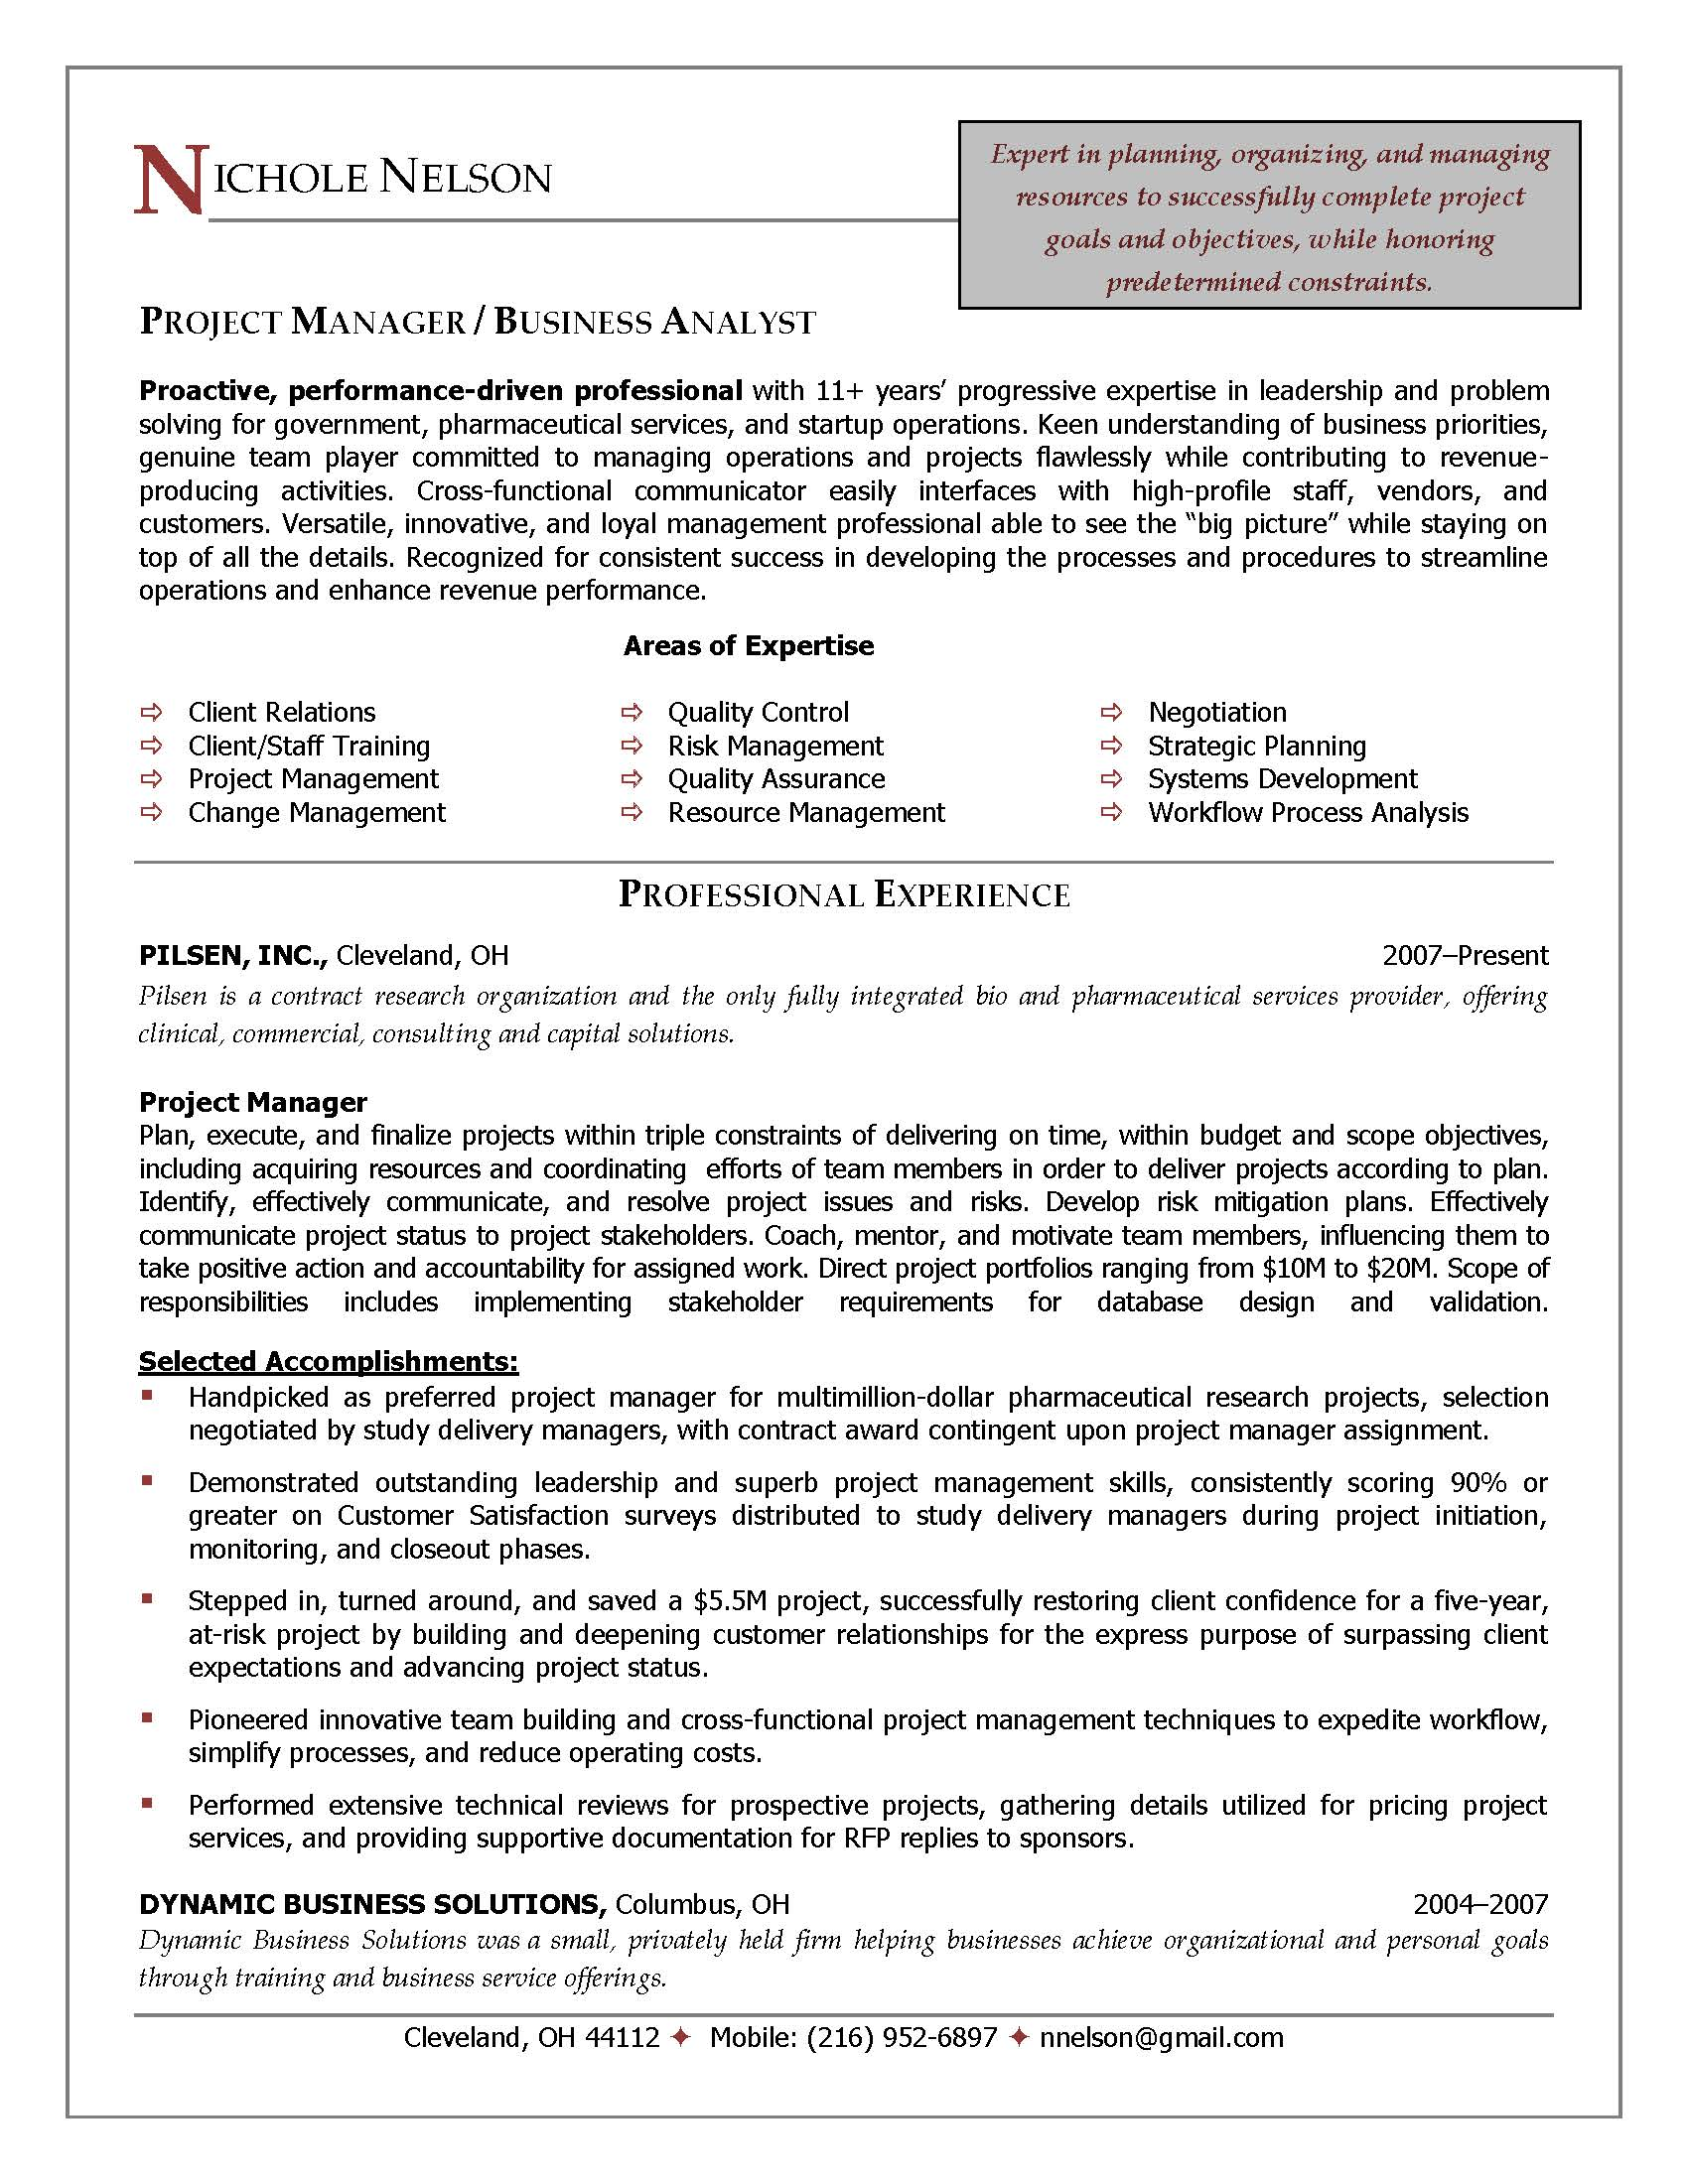 Resume Samples: Program & Finance Manager, FP&A, Devops Sample